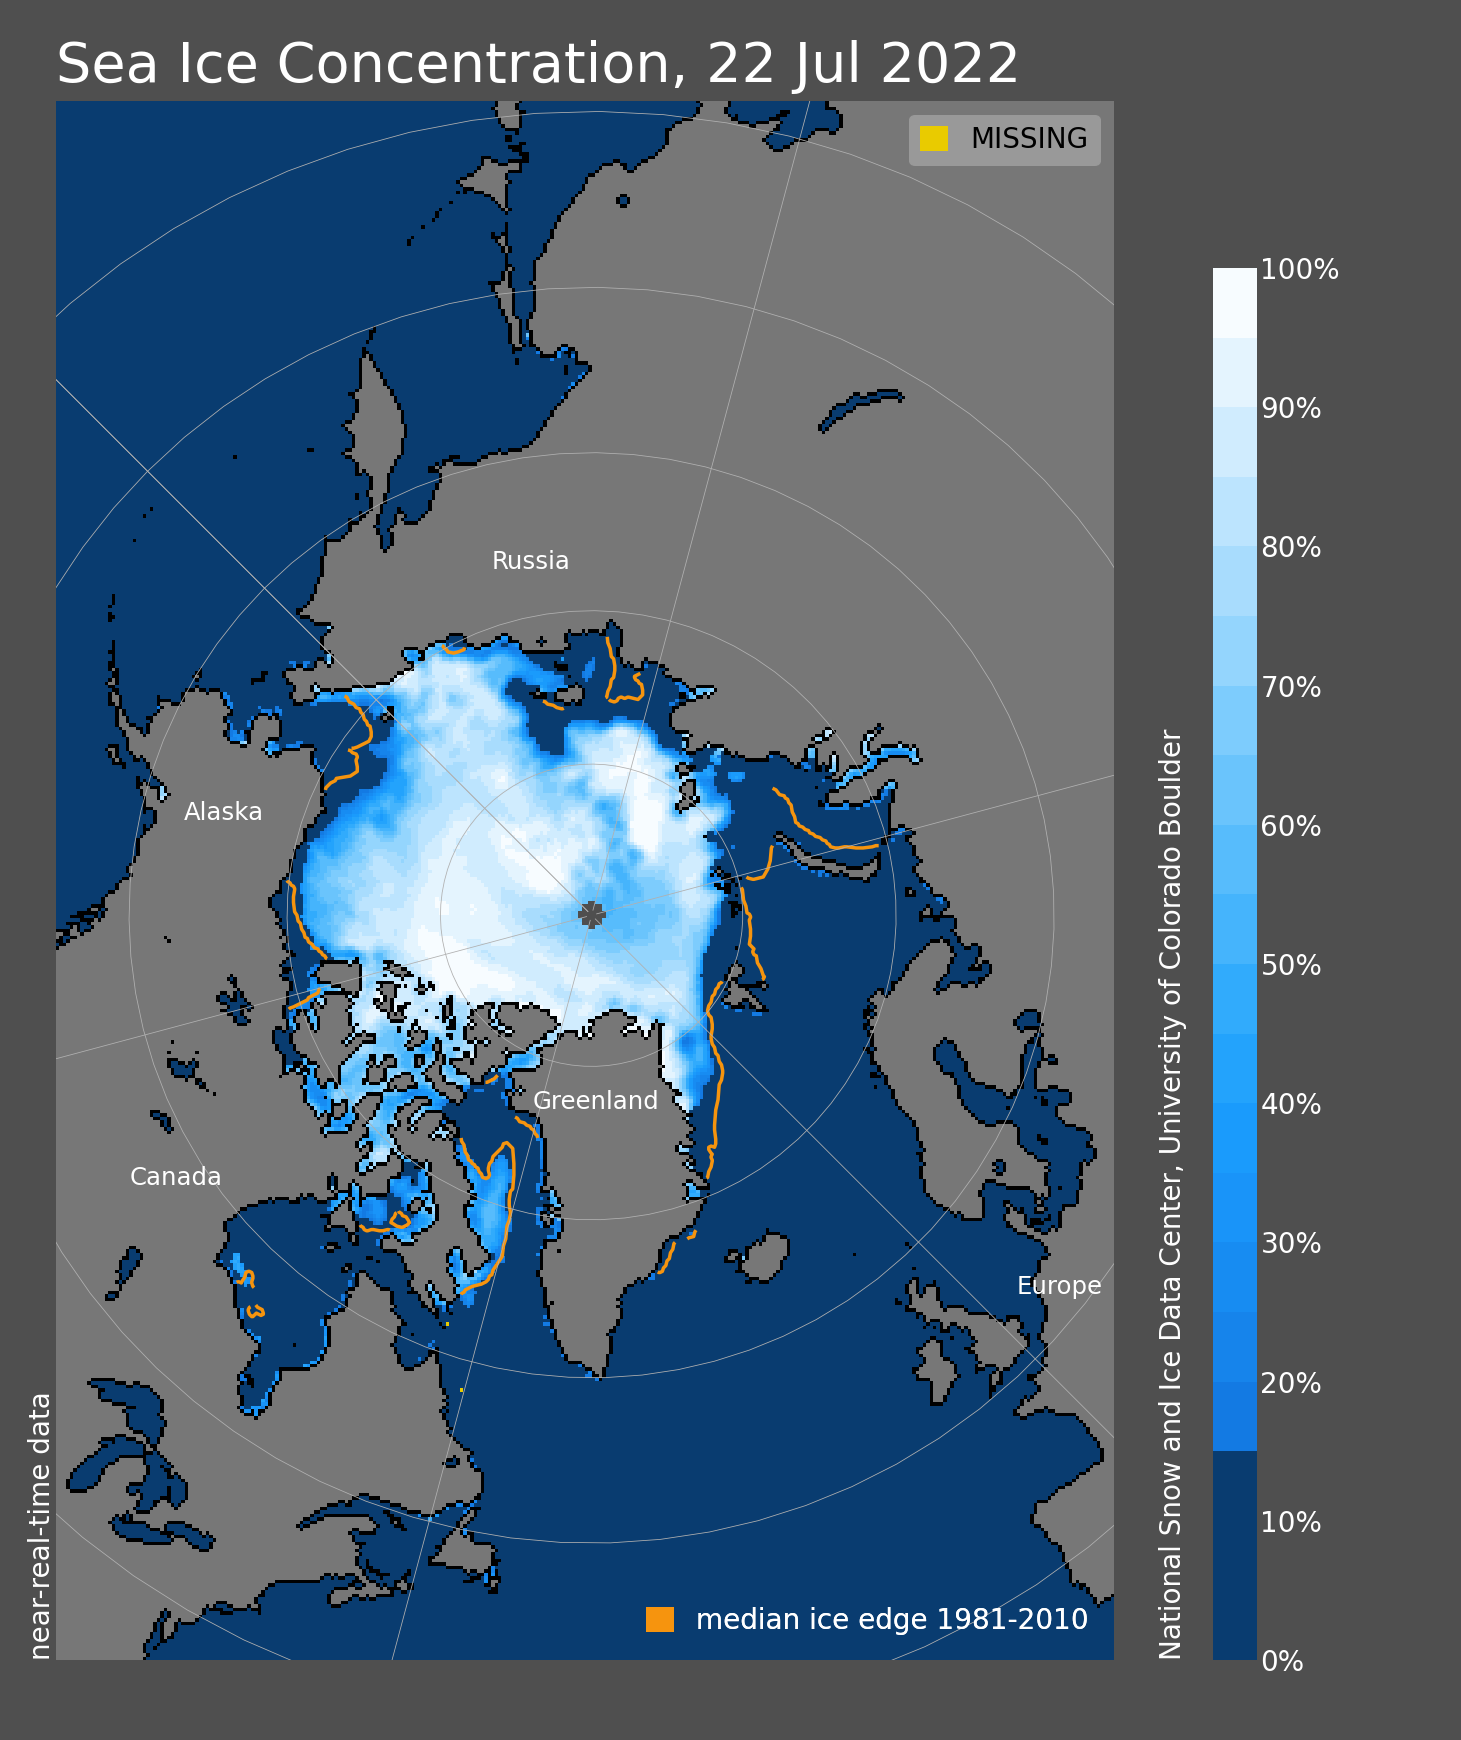 http://nsidc.org/data/seaice_index